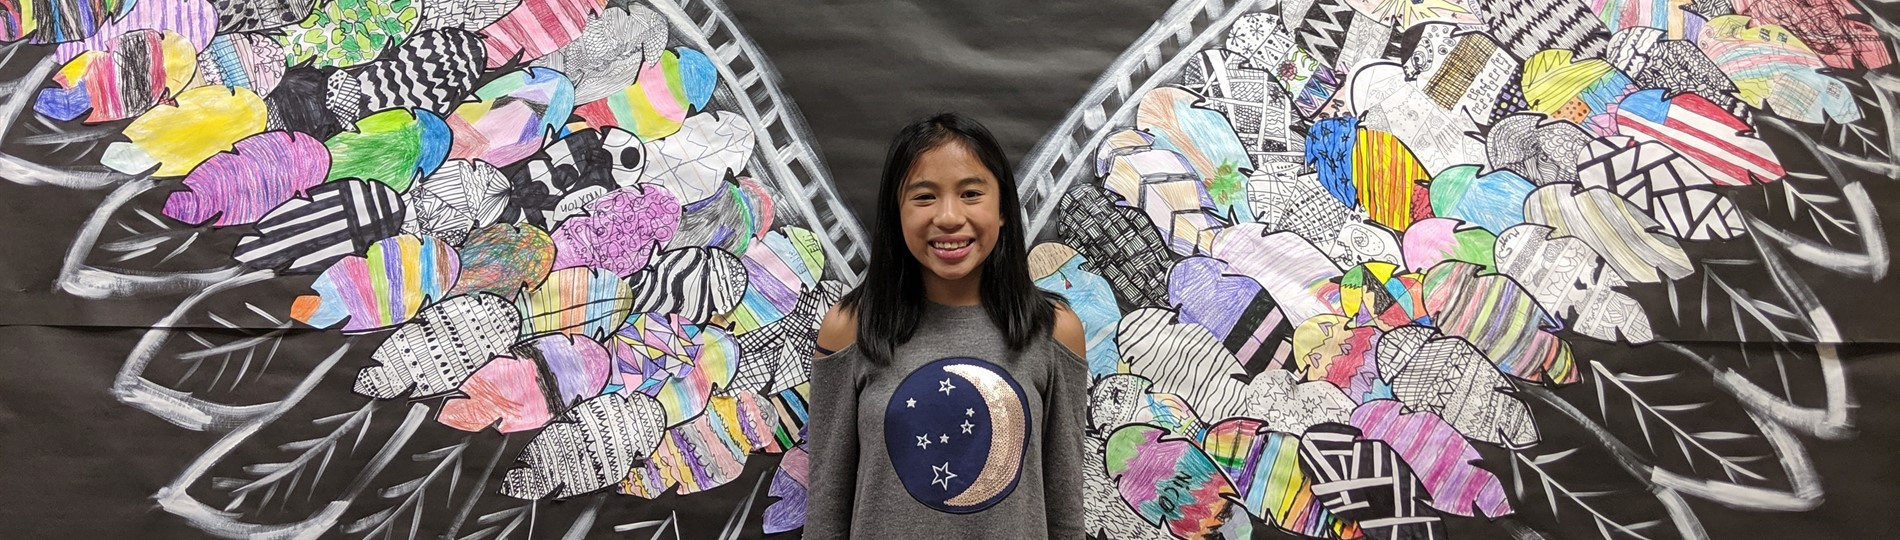 HHES student with wings